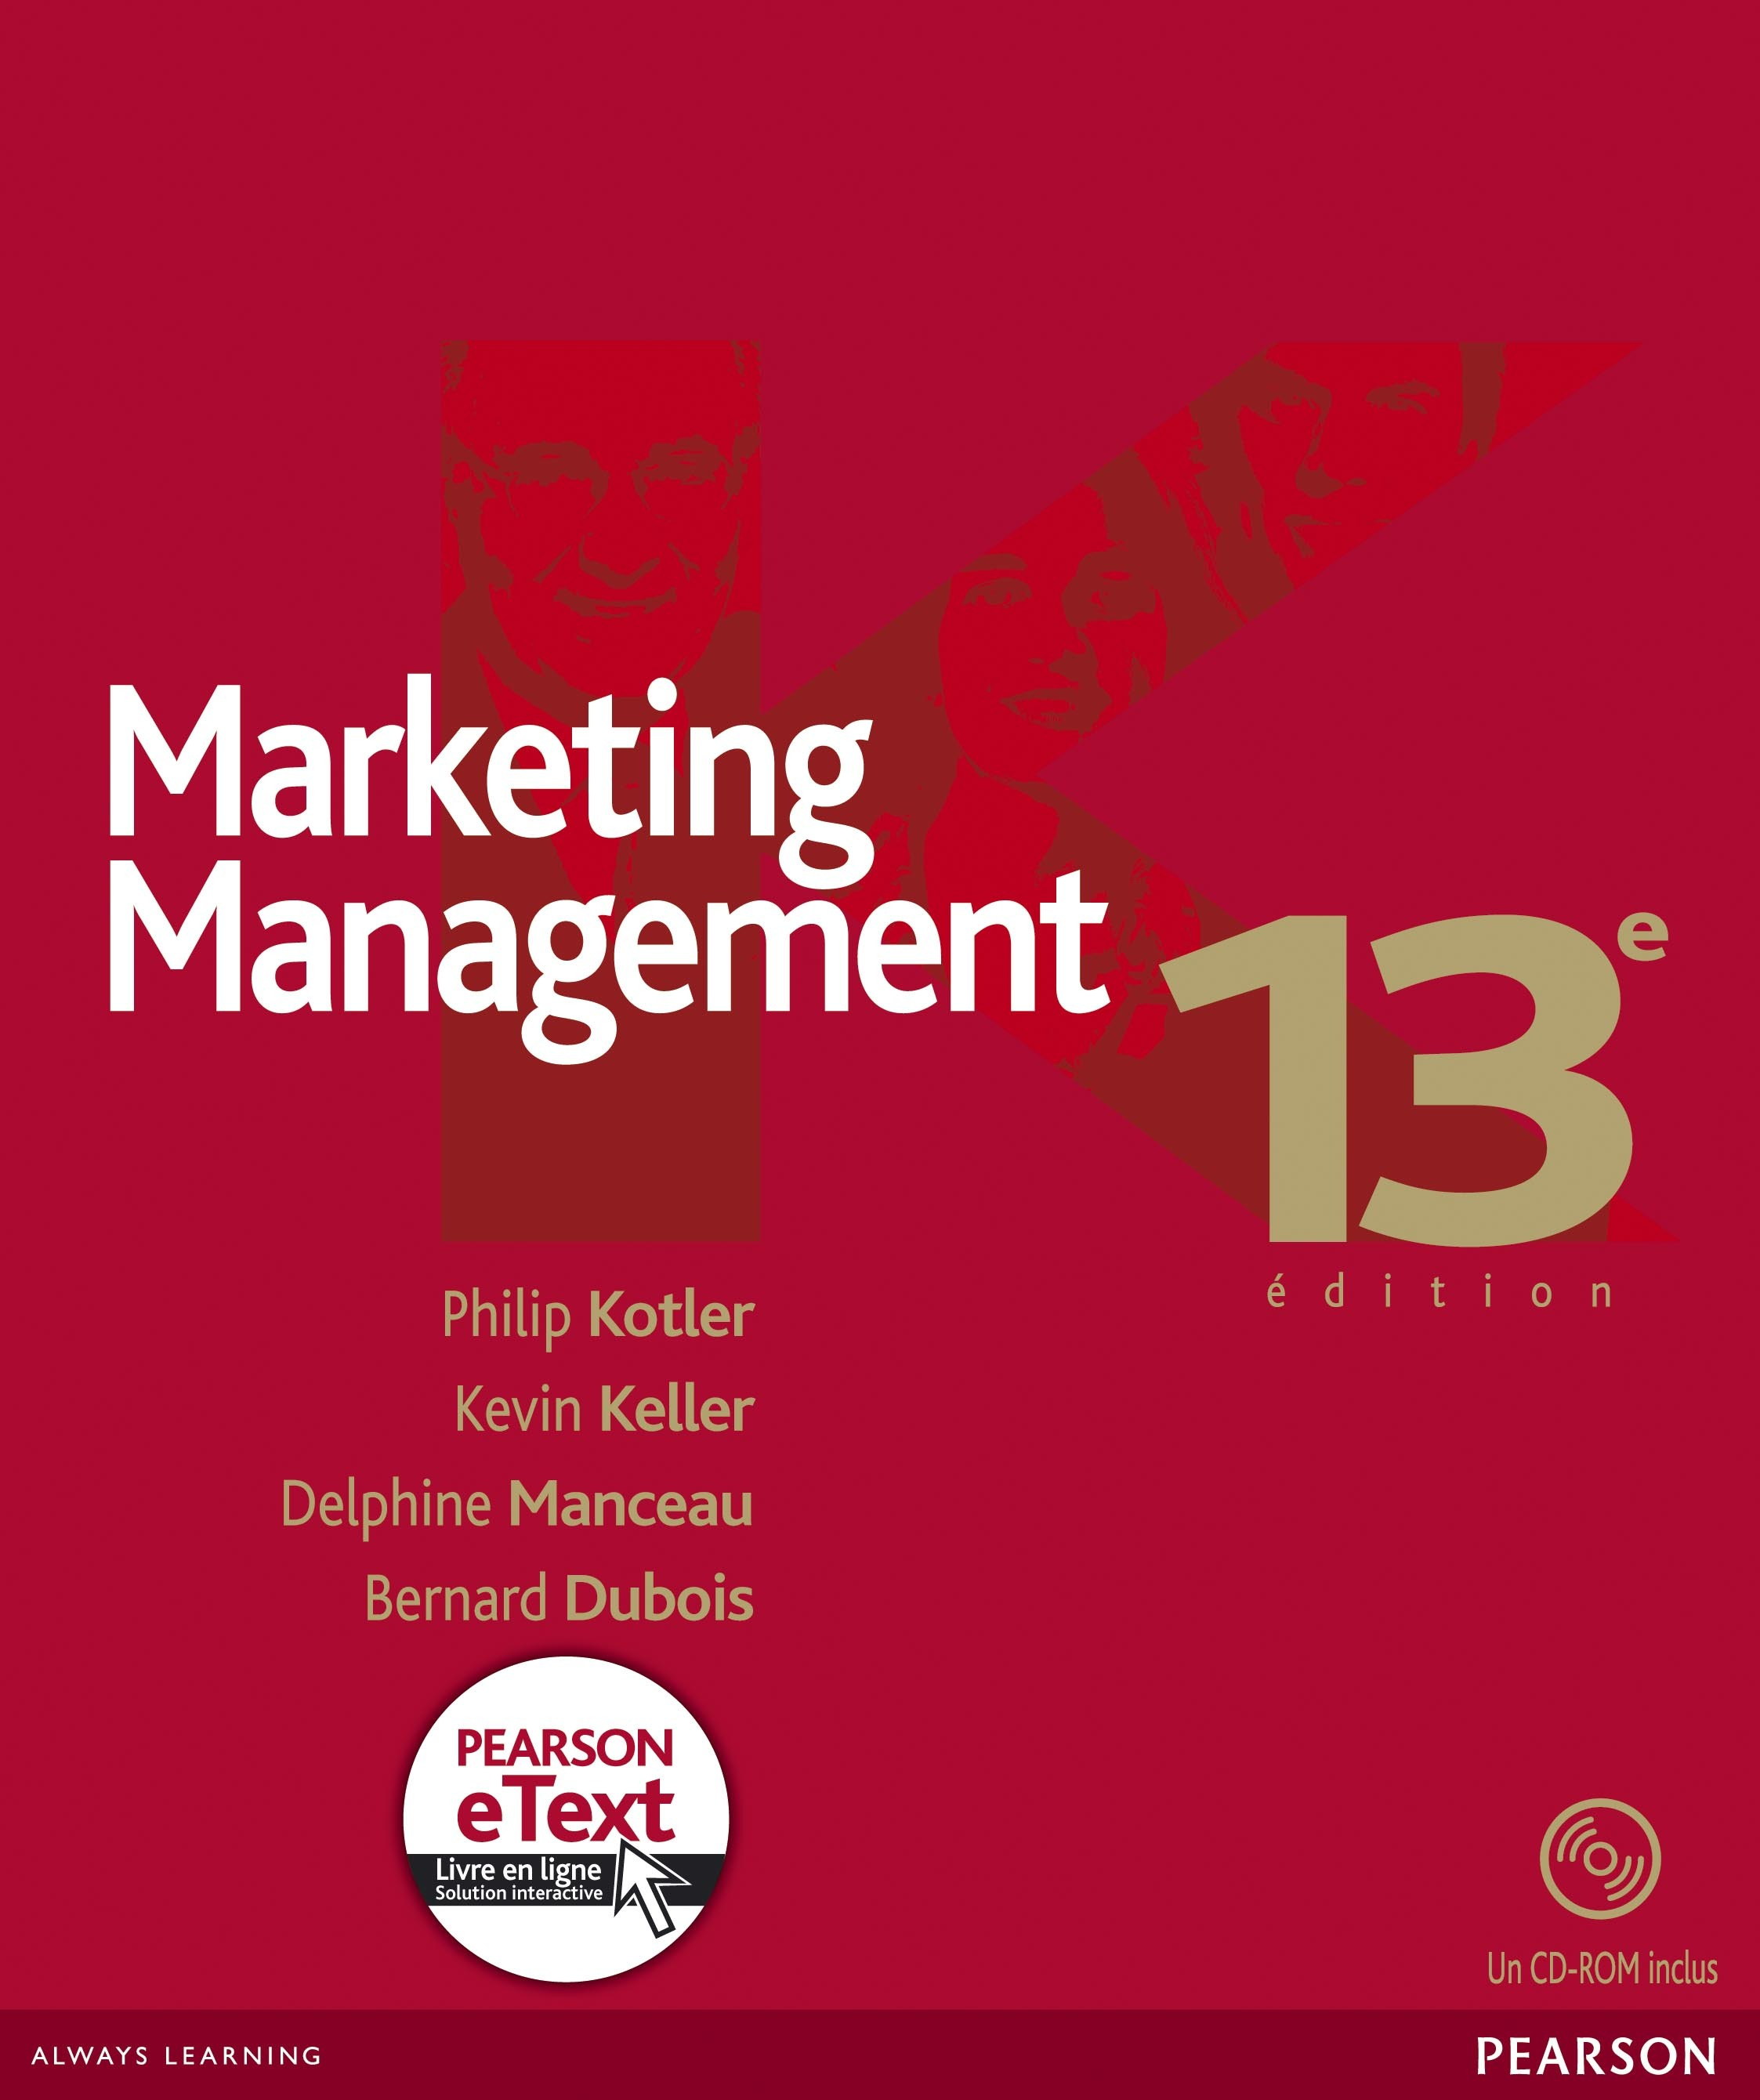 MARKETING MANAGEMENT 13E + ETEXT